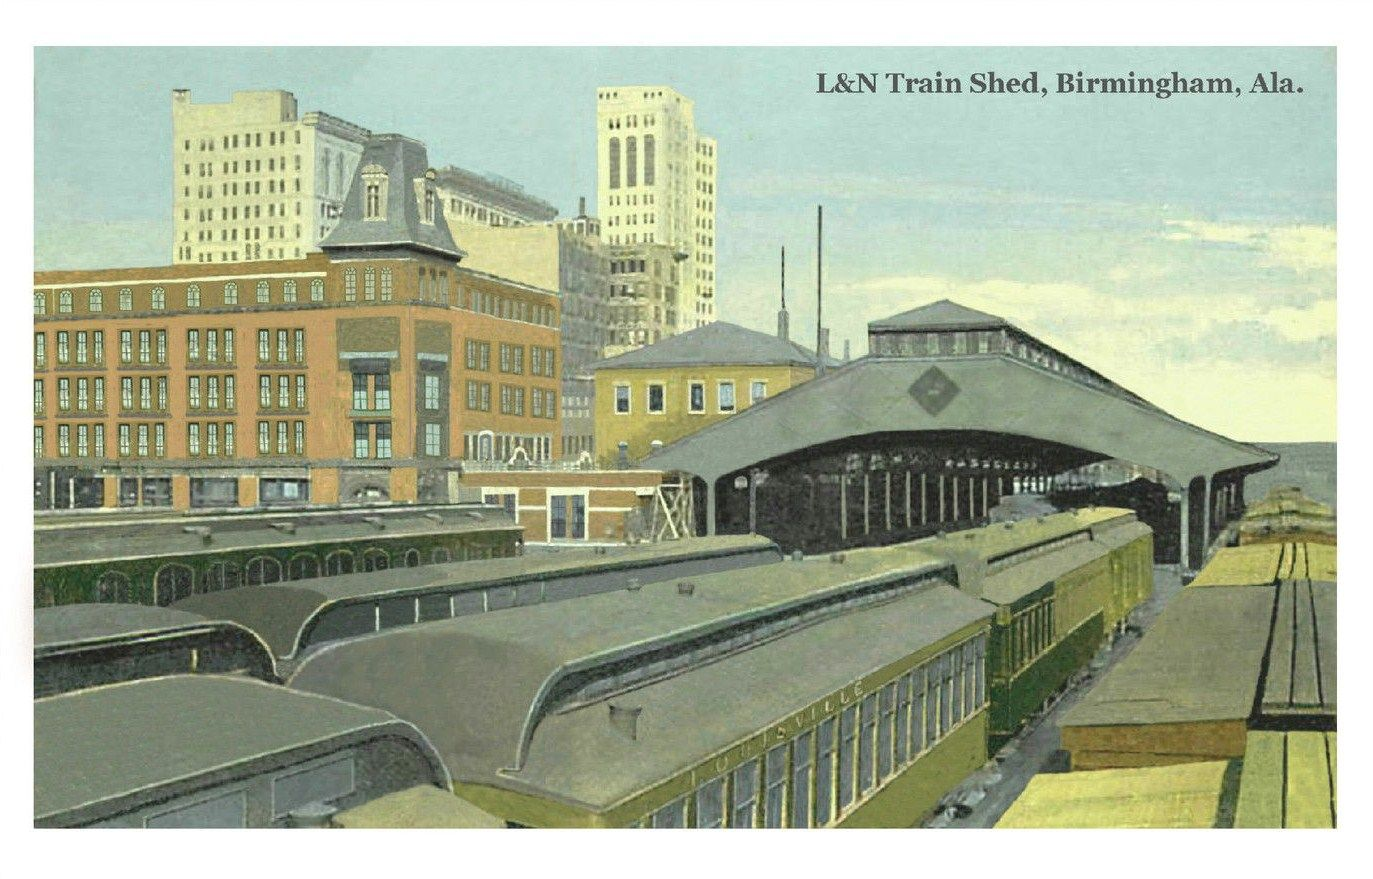 Postcard with L&N RR depot in Birmingham, AL